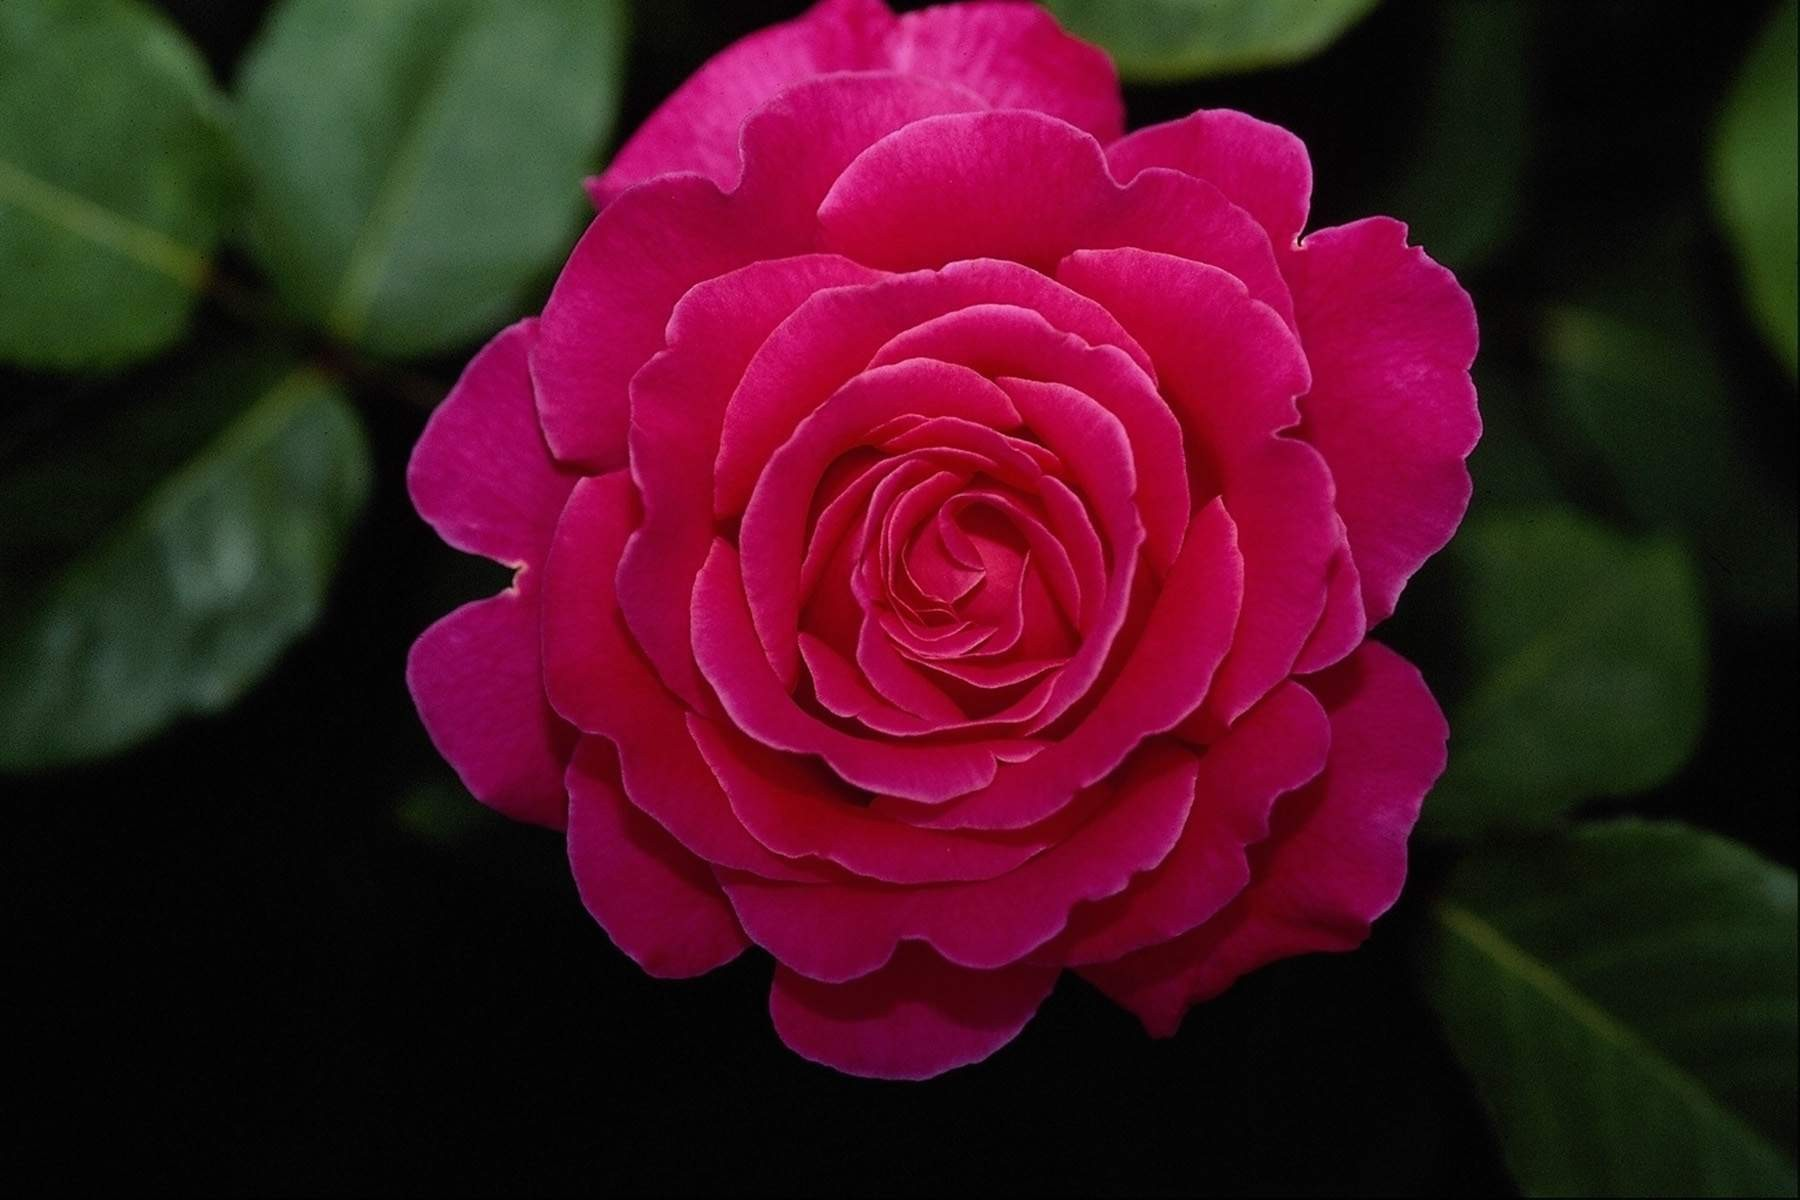 Red Rose Wallpapers Pictures Images: Pink Rose HD Wallpapers